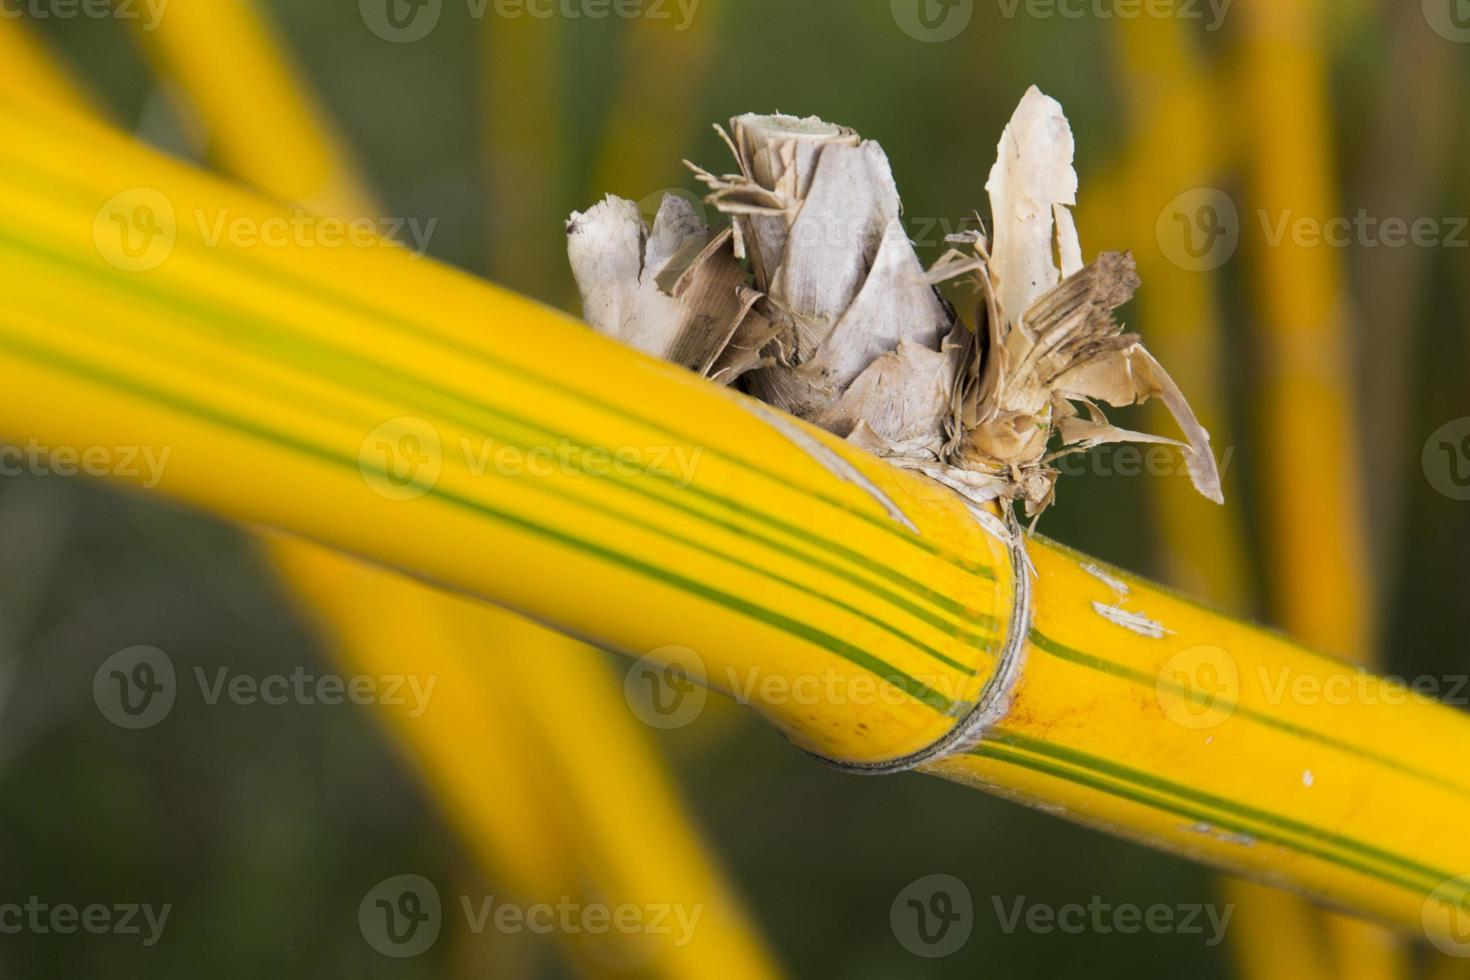 Yellow reeds in a bamboo forest photo